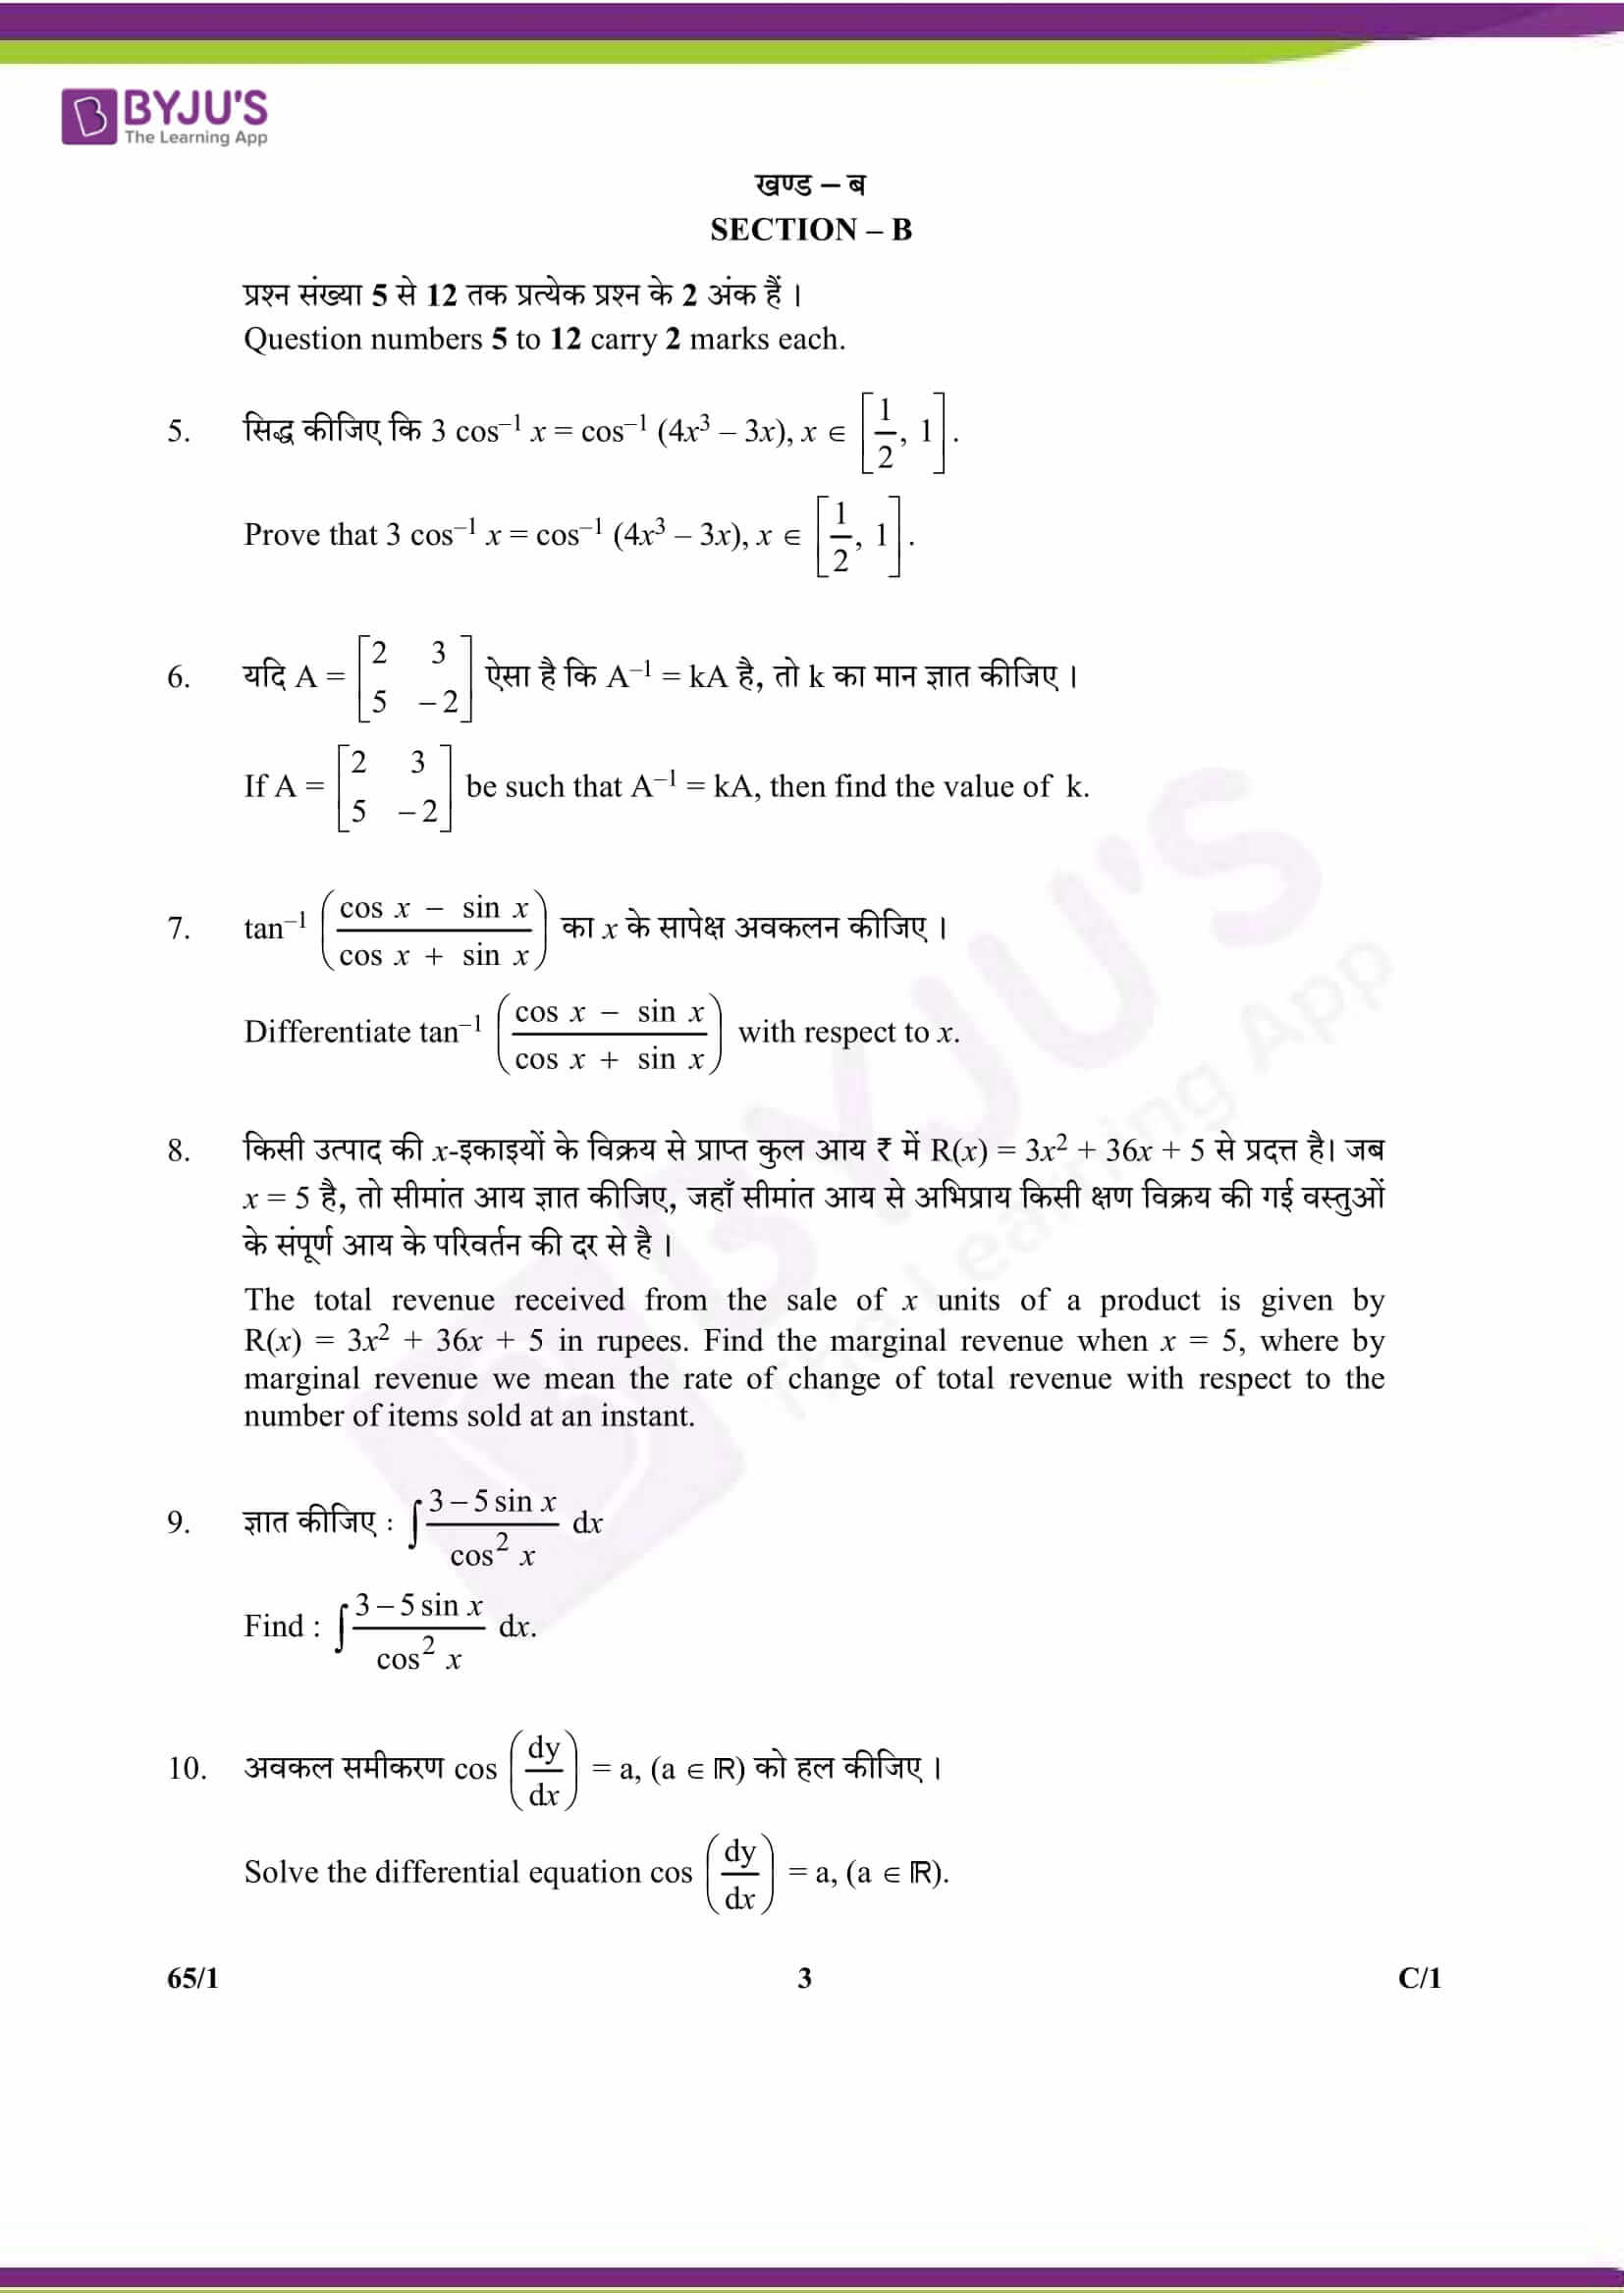 cbse class 12 maths 2018 question paper set 1